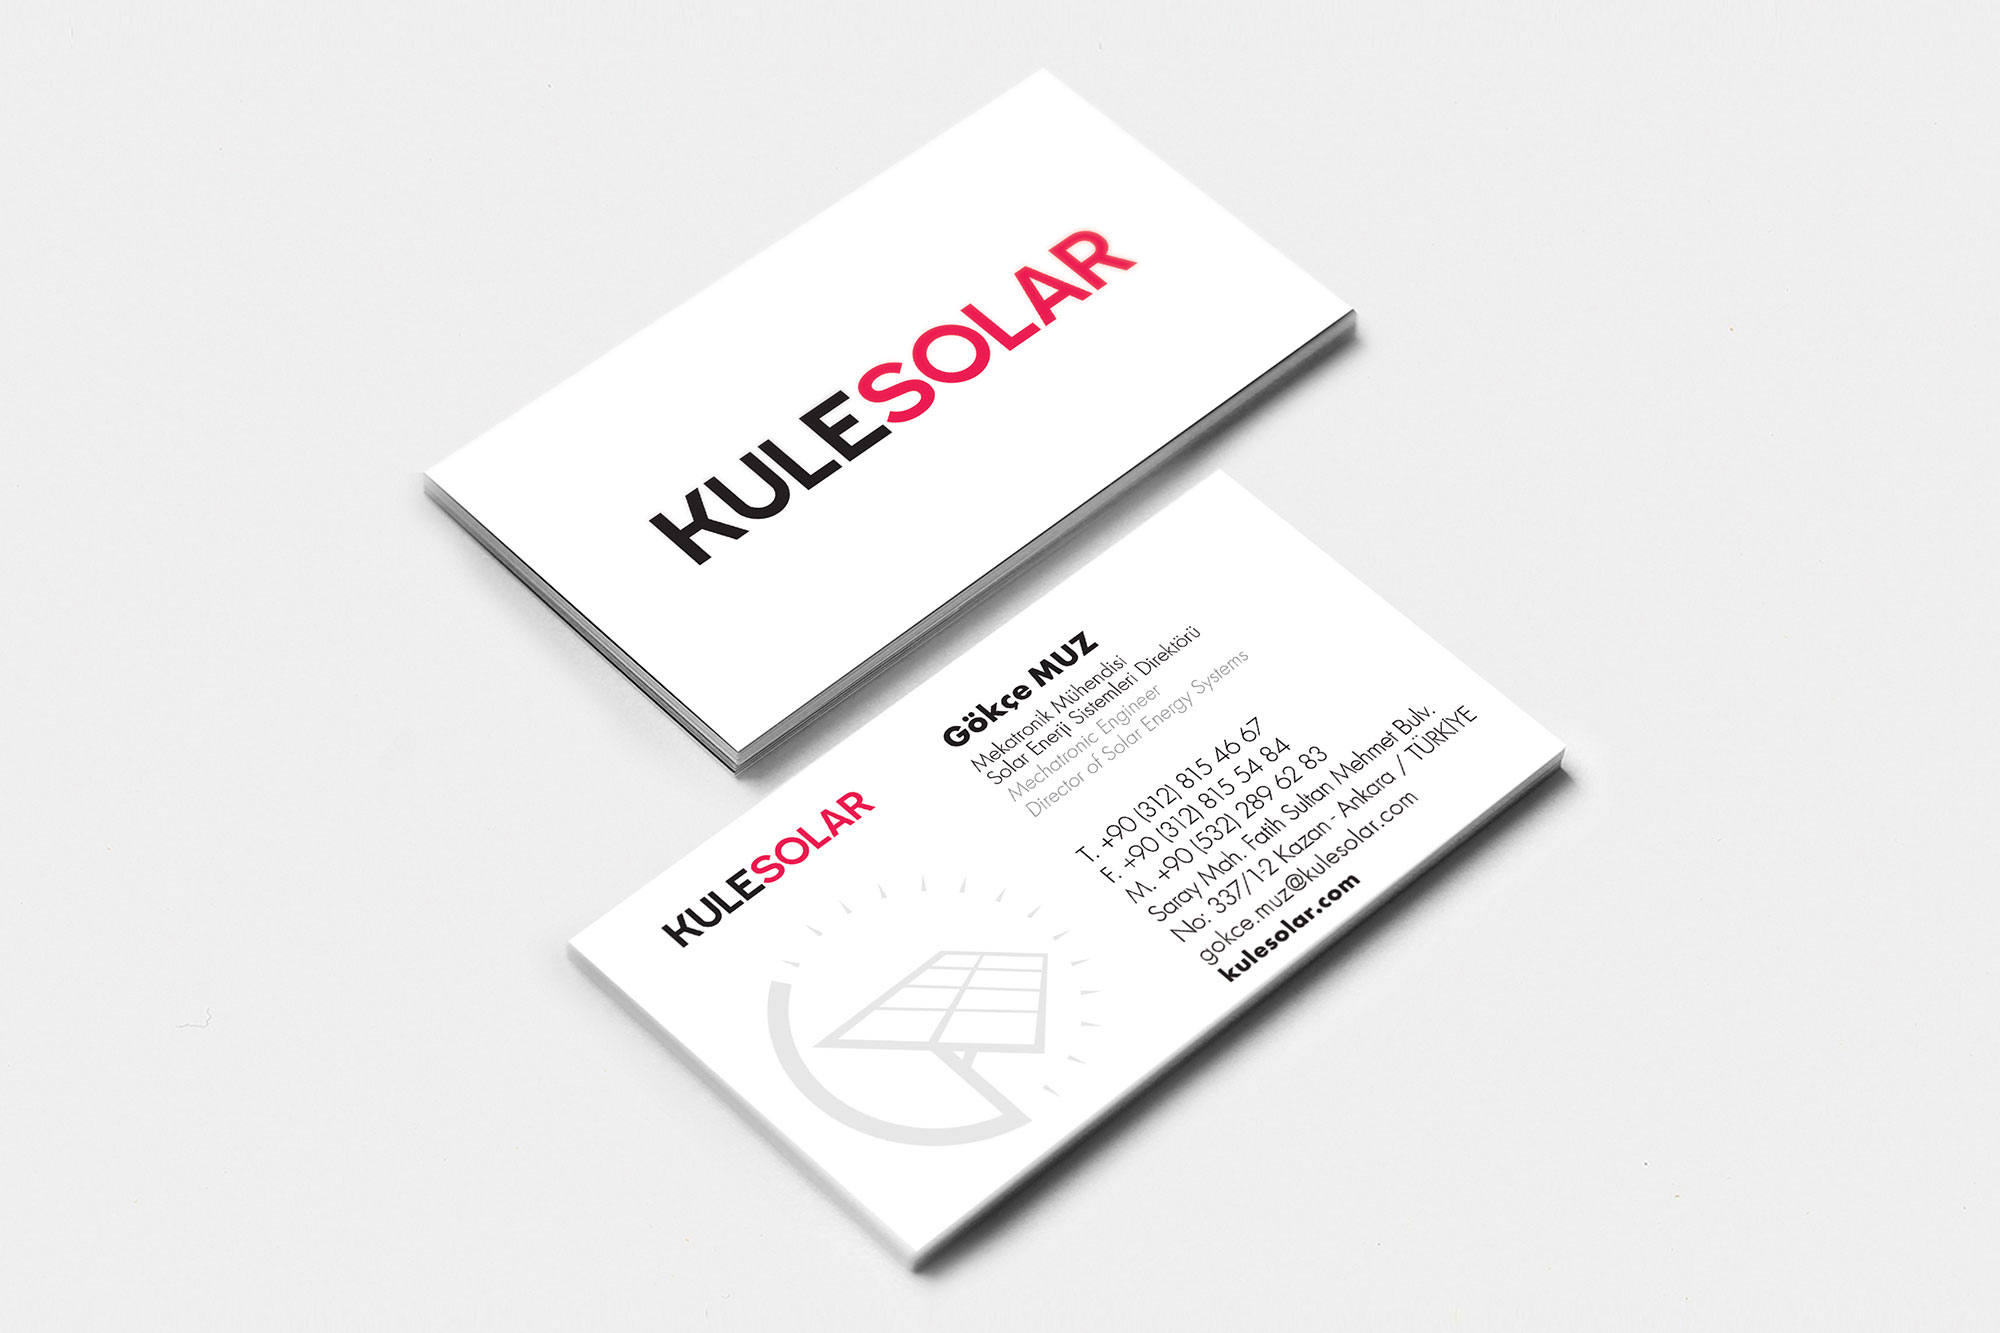 Kule Solar Logo and Corporate ID